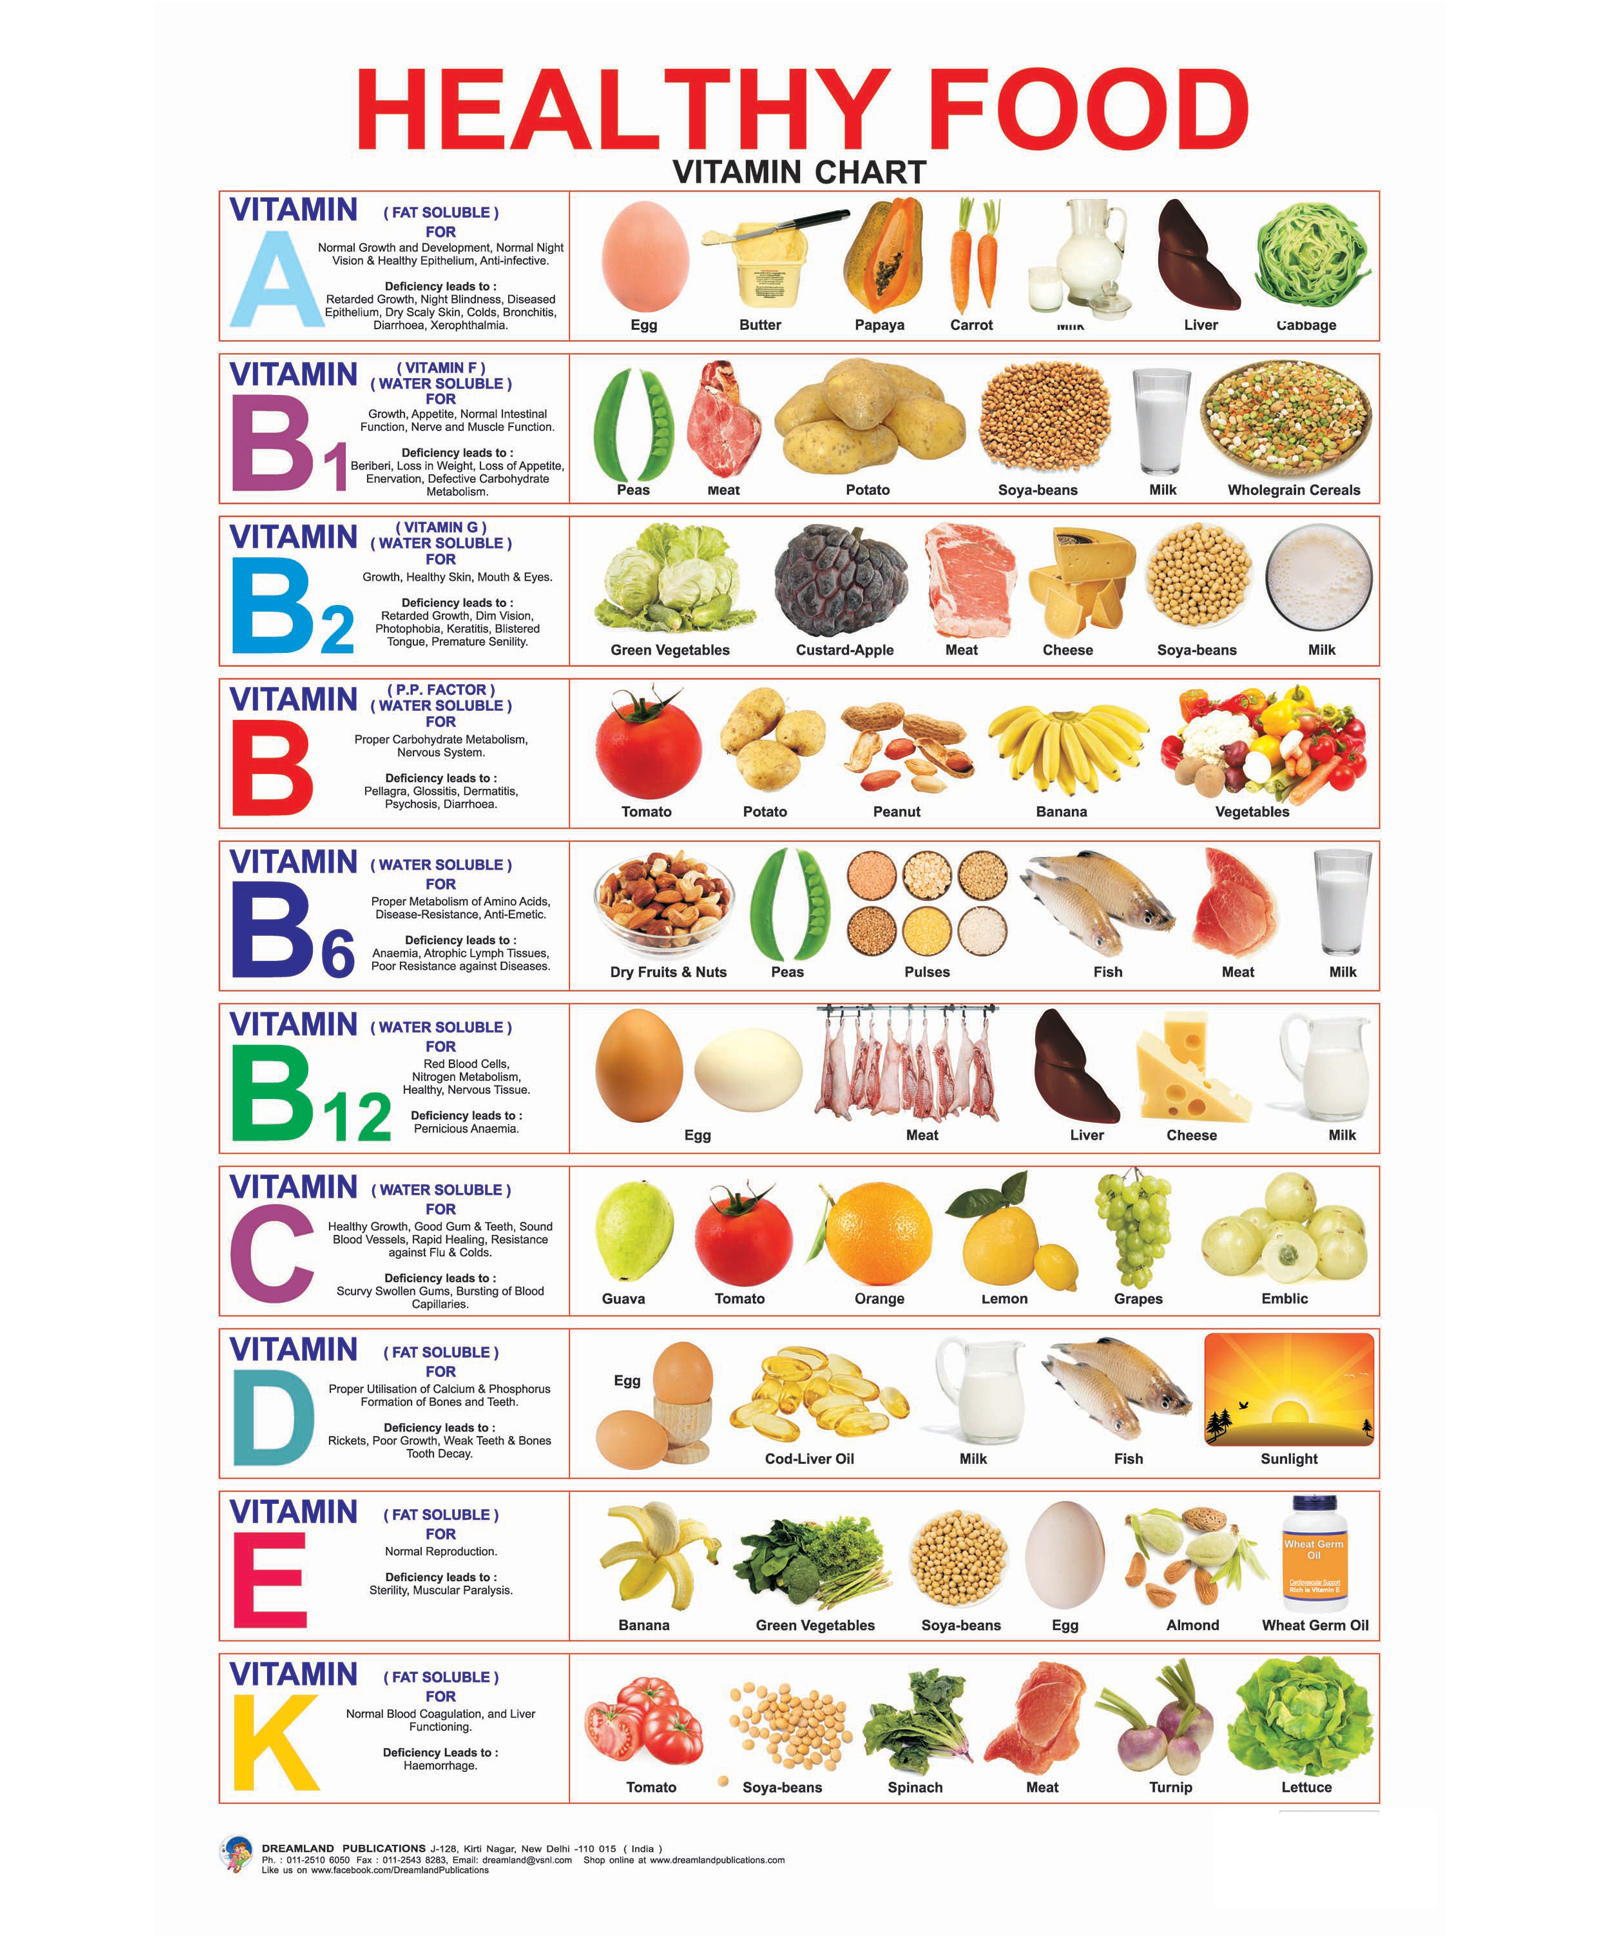 Healthy food vitamin chart english online in india buy at best